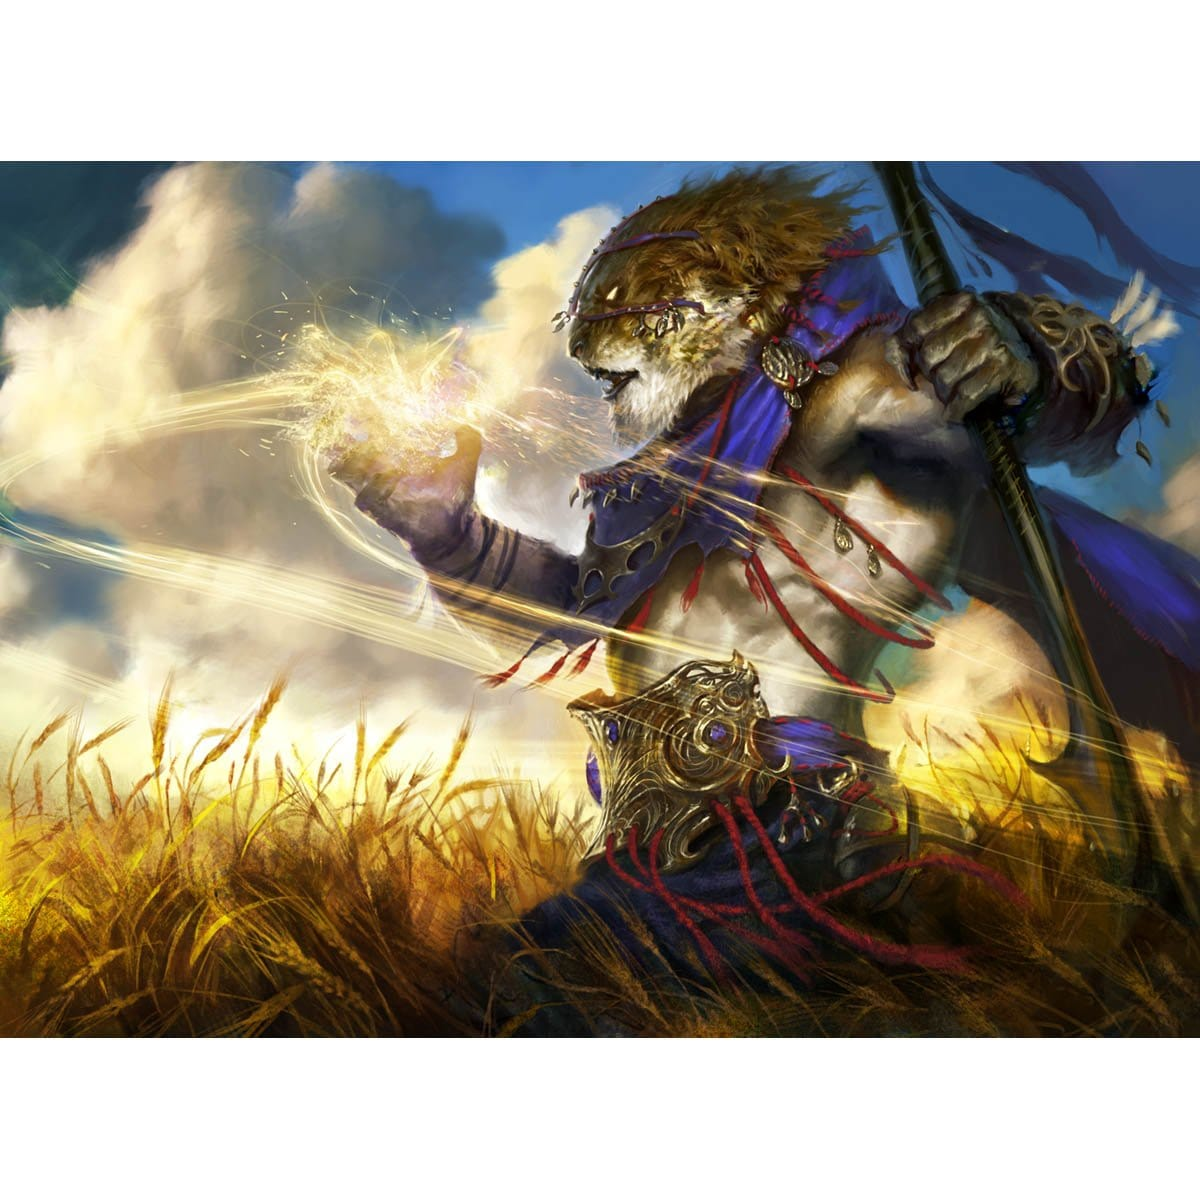 Oreskos Sun Guide Print - Print - Original Magic Art - Accessories for Magic the Gathering and other card games